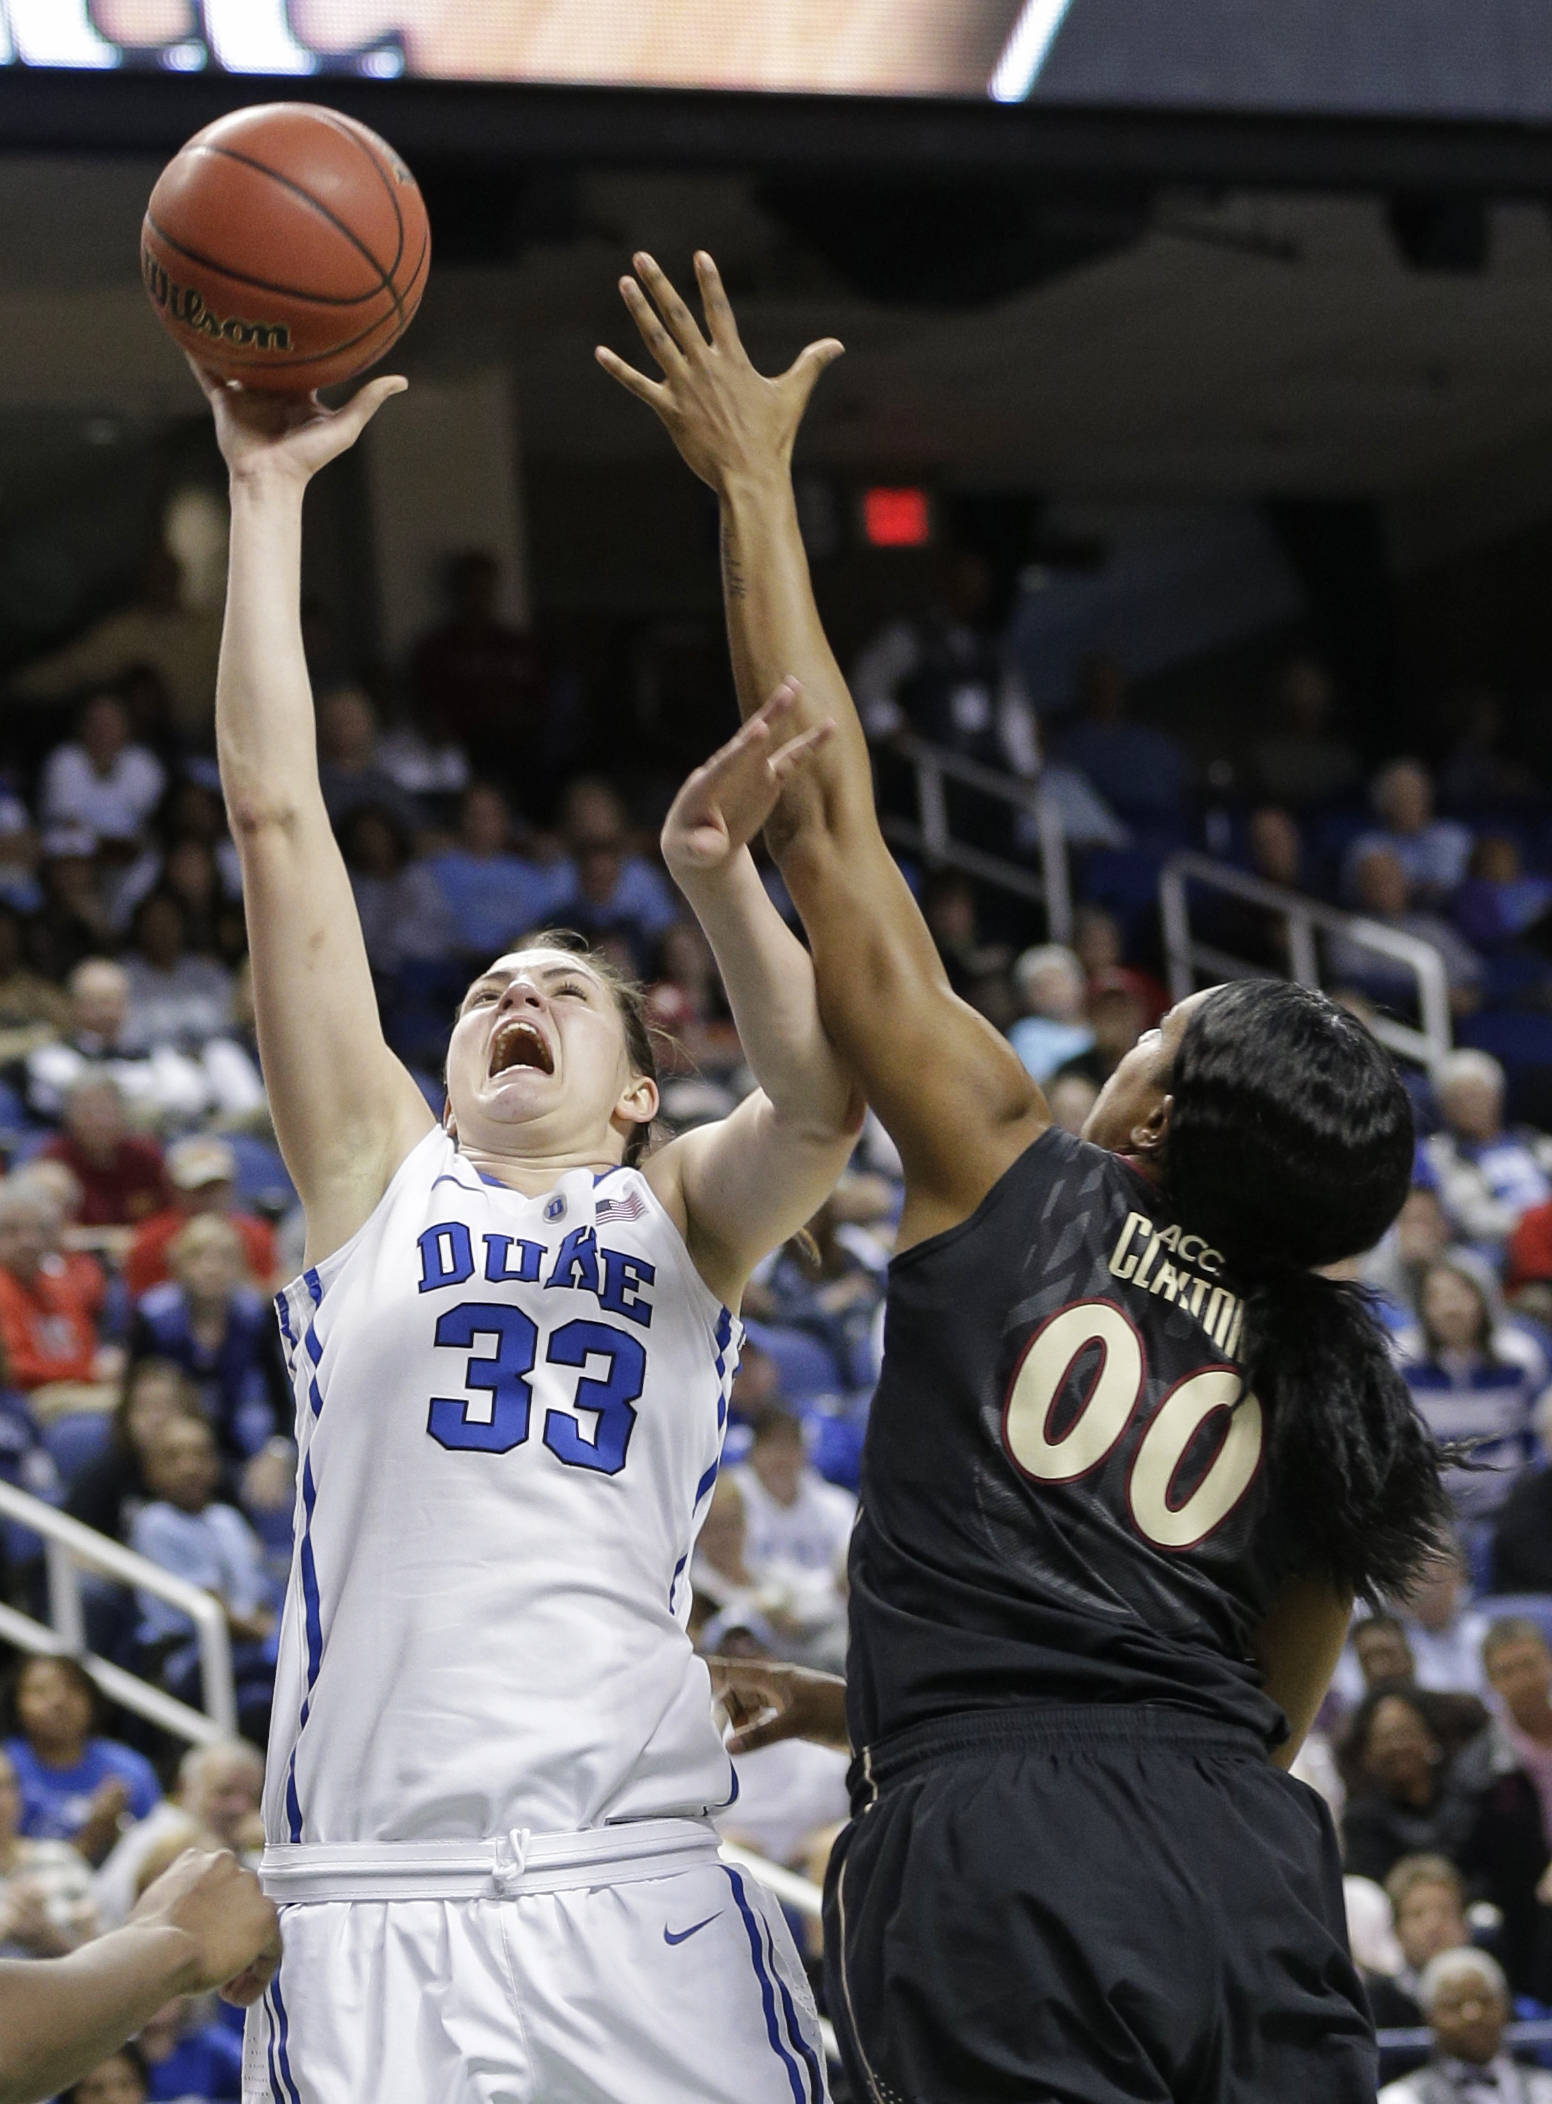 Duke's Haley Peters (33) shoot over Florida State's Chasity Clayton (00). (AP Photo/Chuck Burton)